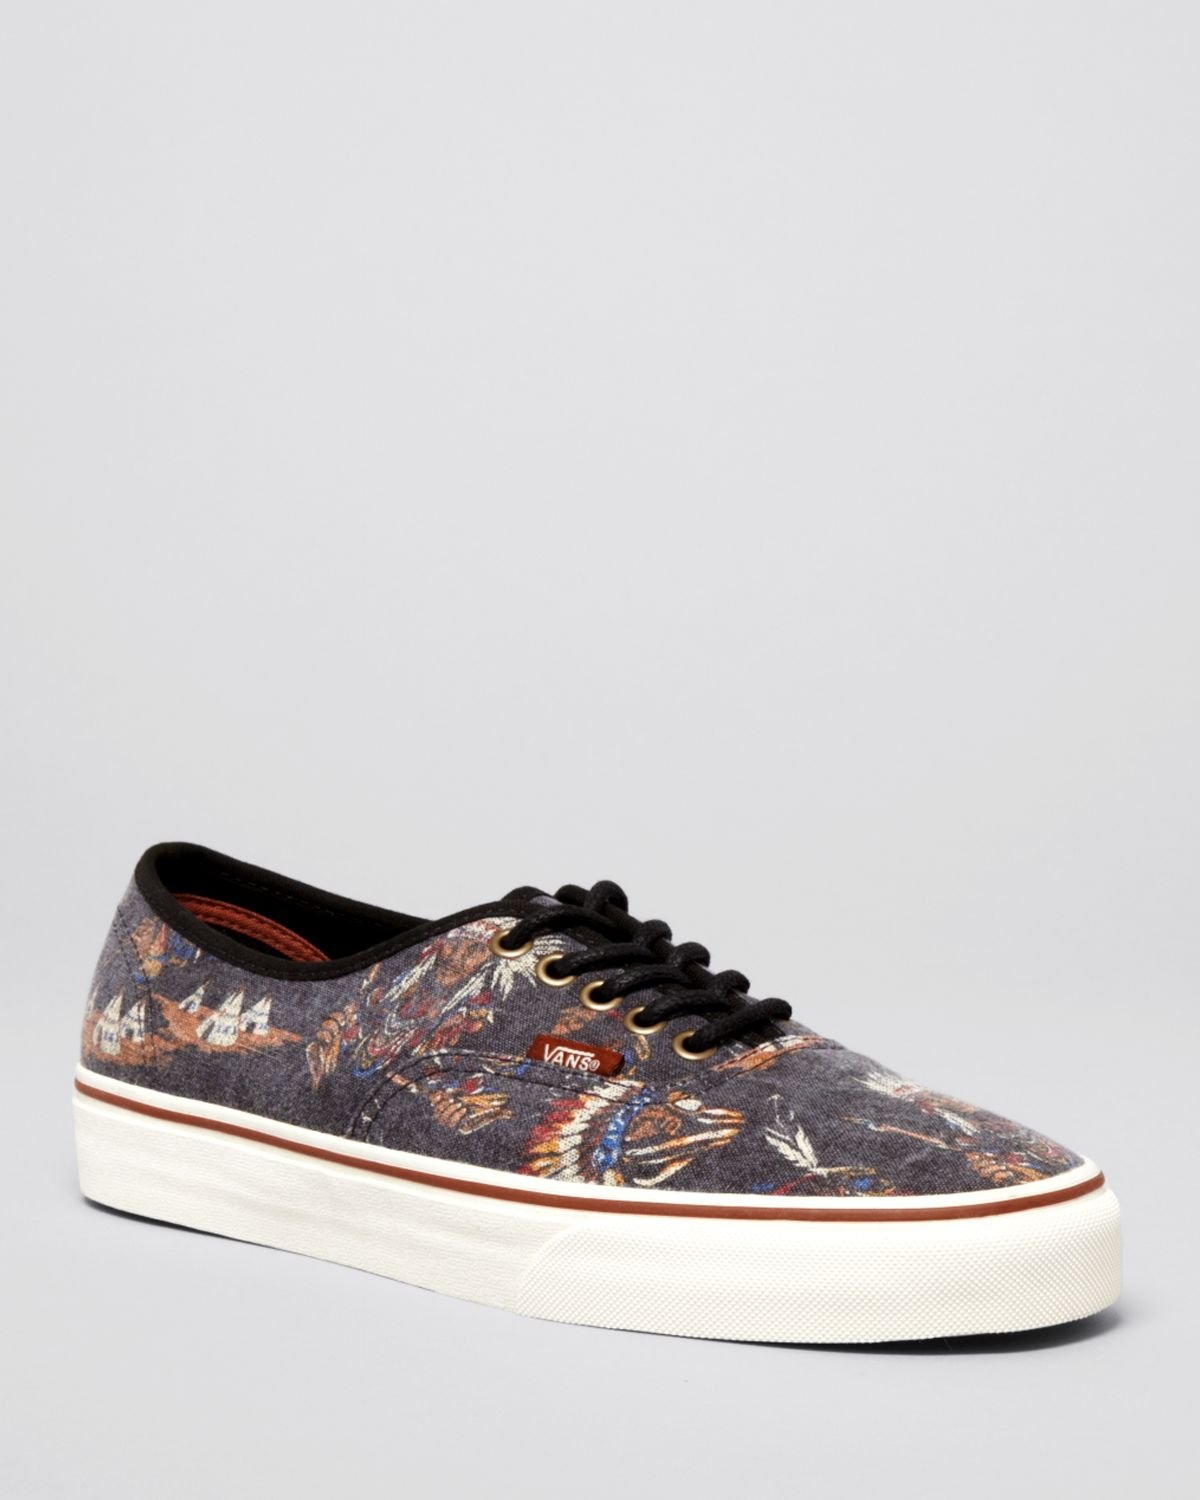 10c8e0928f4926 Lyst - Vans Authentic Tribal Leaders Sneakers in Black for Men